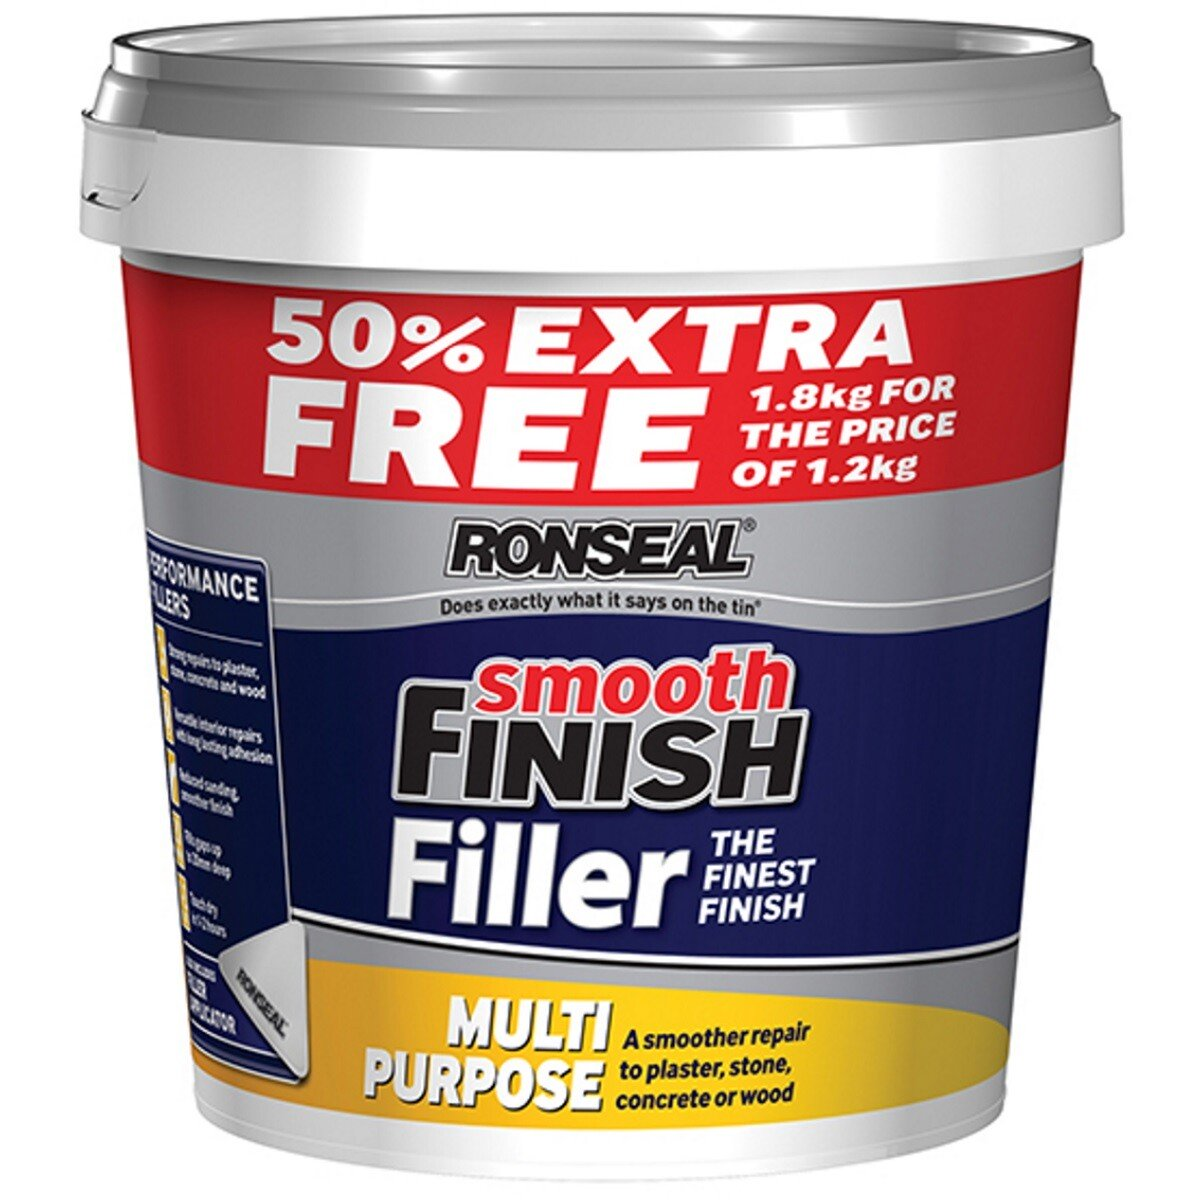 Ronseal 36546 Smooth Finish Multi Purpose Interior Wall Filler Ready Mixed 1.2kg +50% RSLMPRMF12VP